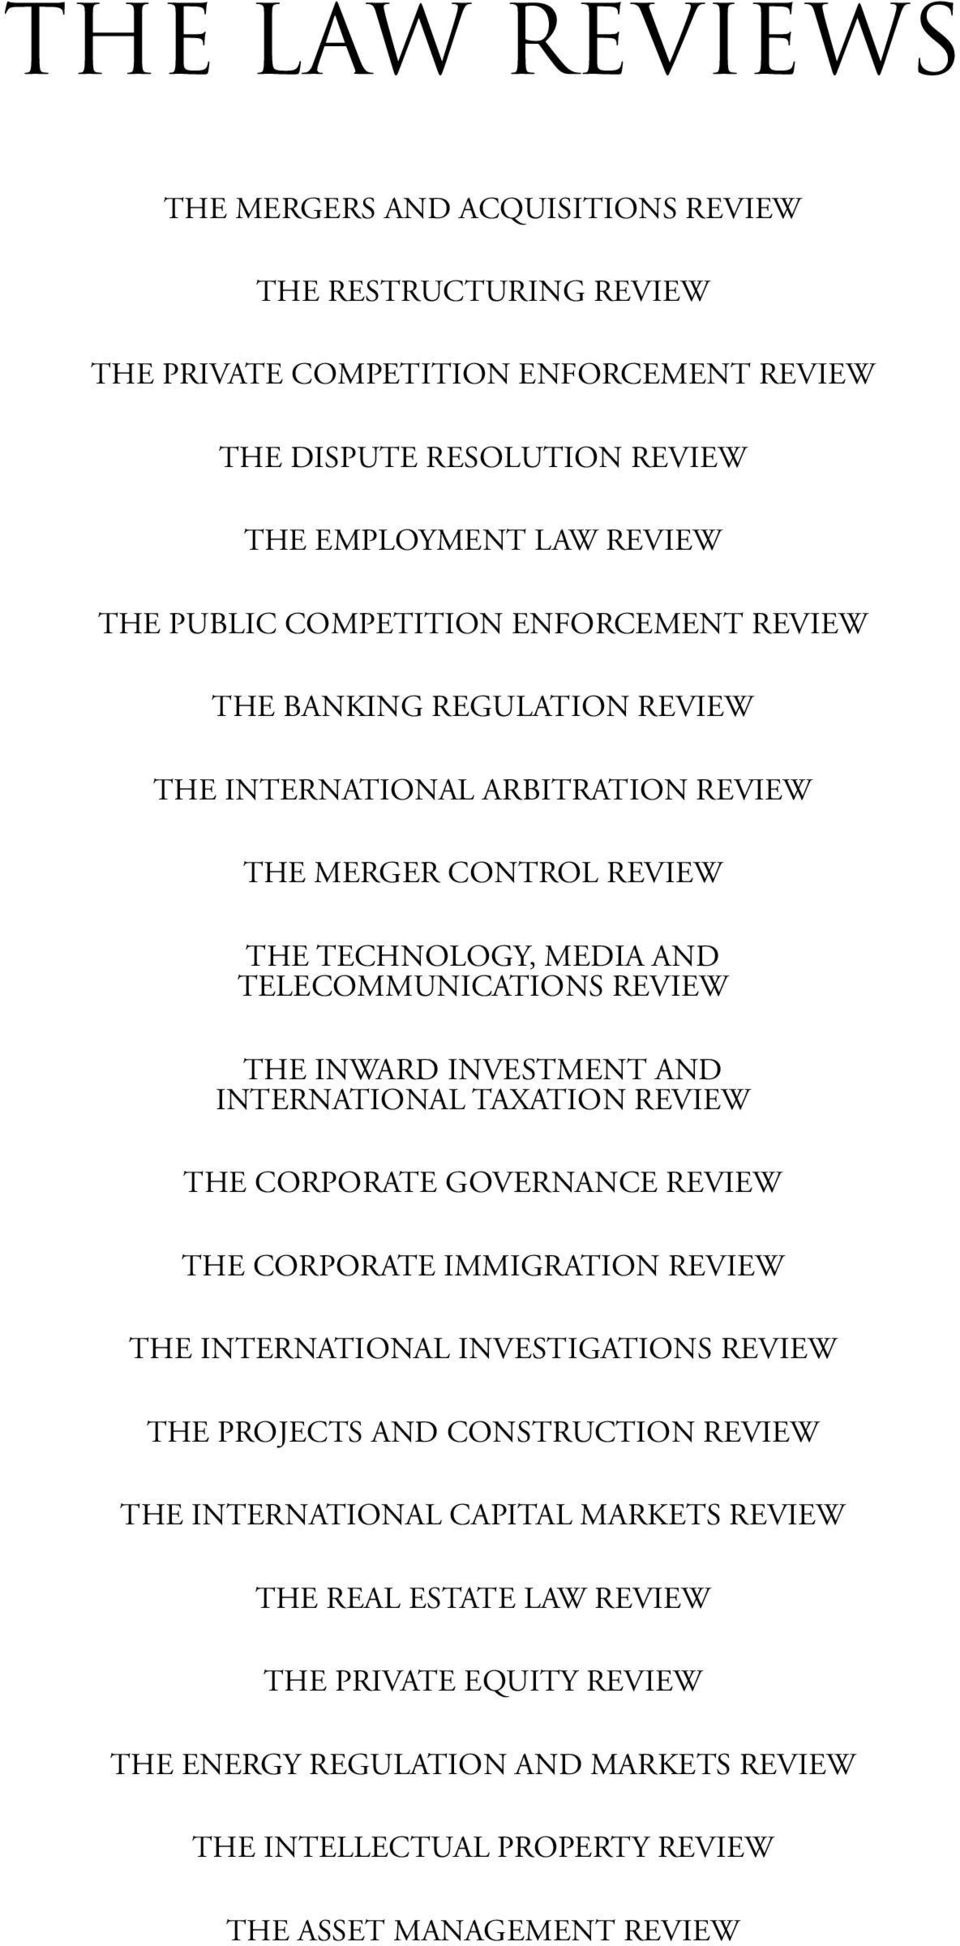 INVESTMENT AND INTERNATIONAL TAXATION REVIEW THE CORPORATE GOVERNANCE REVIEW THE CORPORATE IMMIGRATION REVIEW THE INTERNATIONAL INVESTIGATIONS REVIEW THE PROJECTS AND CONSTRUCTION REVIEW